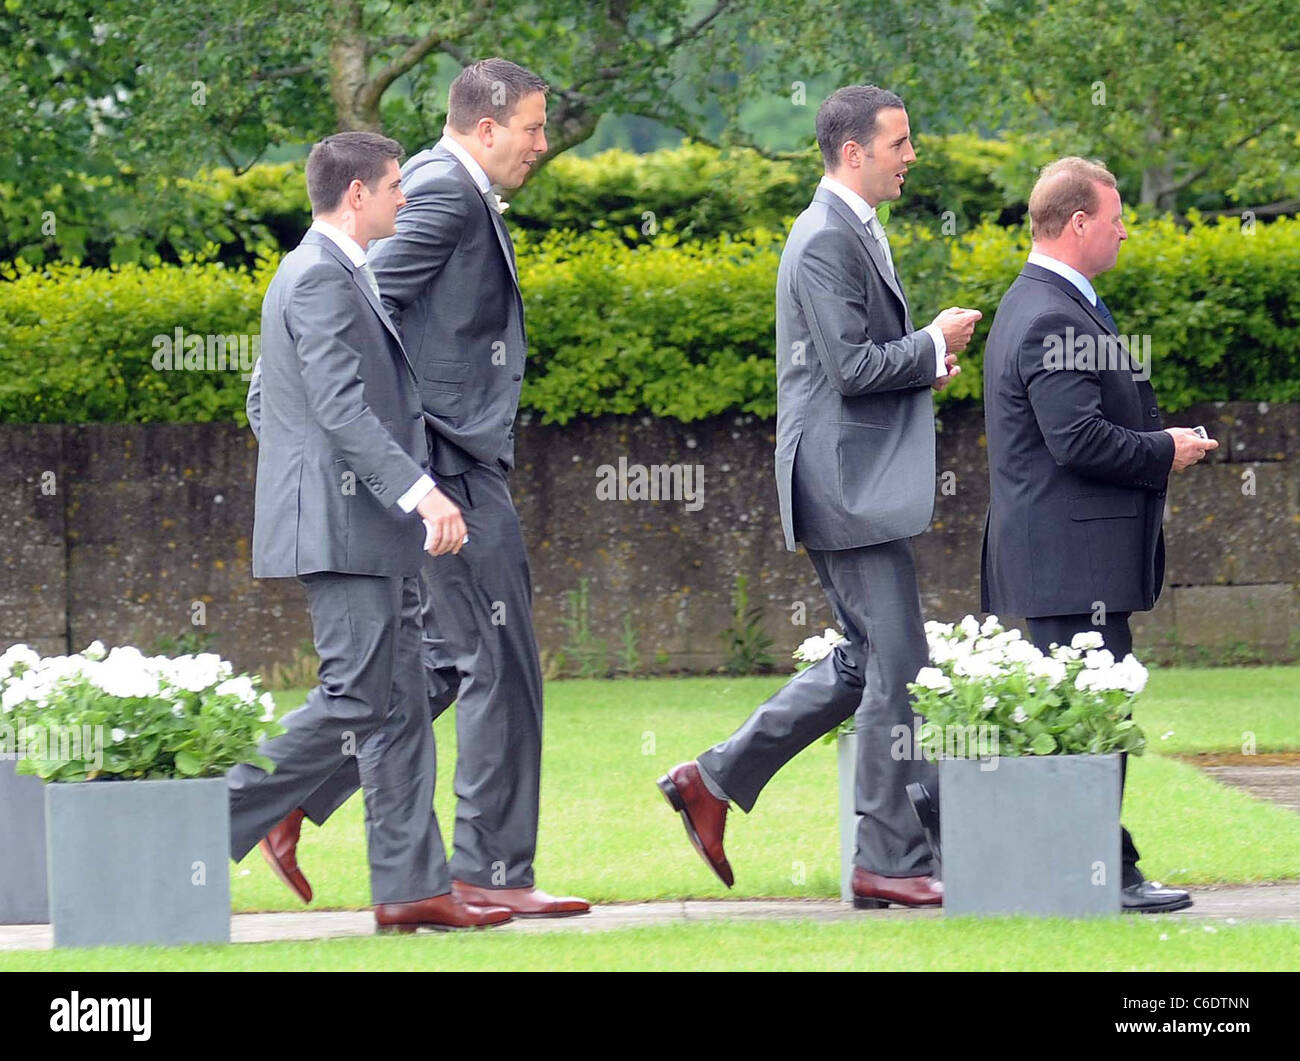 John O'Shea and friends attend his wedding at the Lady Chapel in Maynooth, County Kildare, Ireland - 08.06.10 - Stock Image